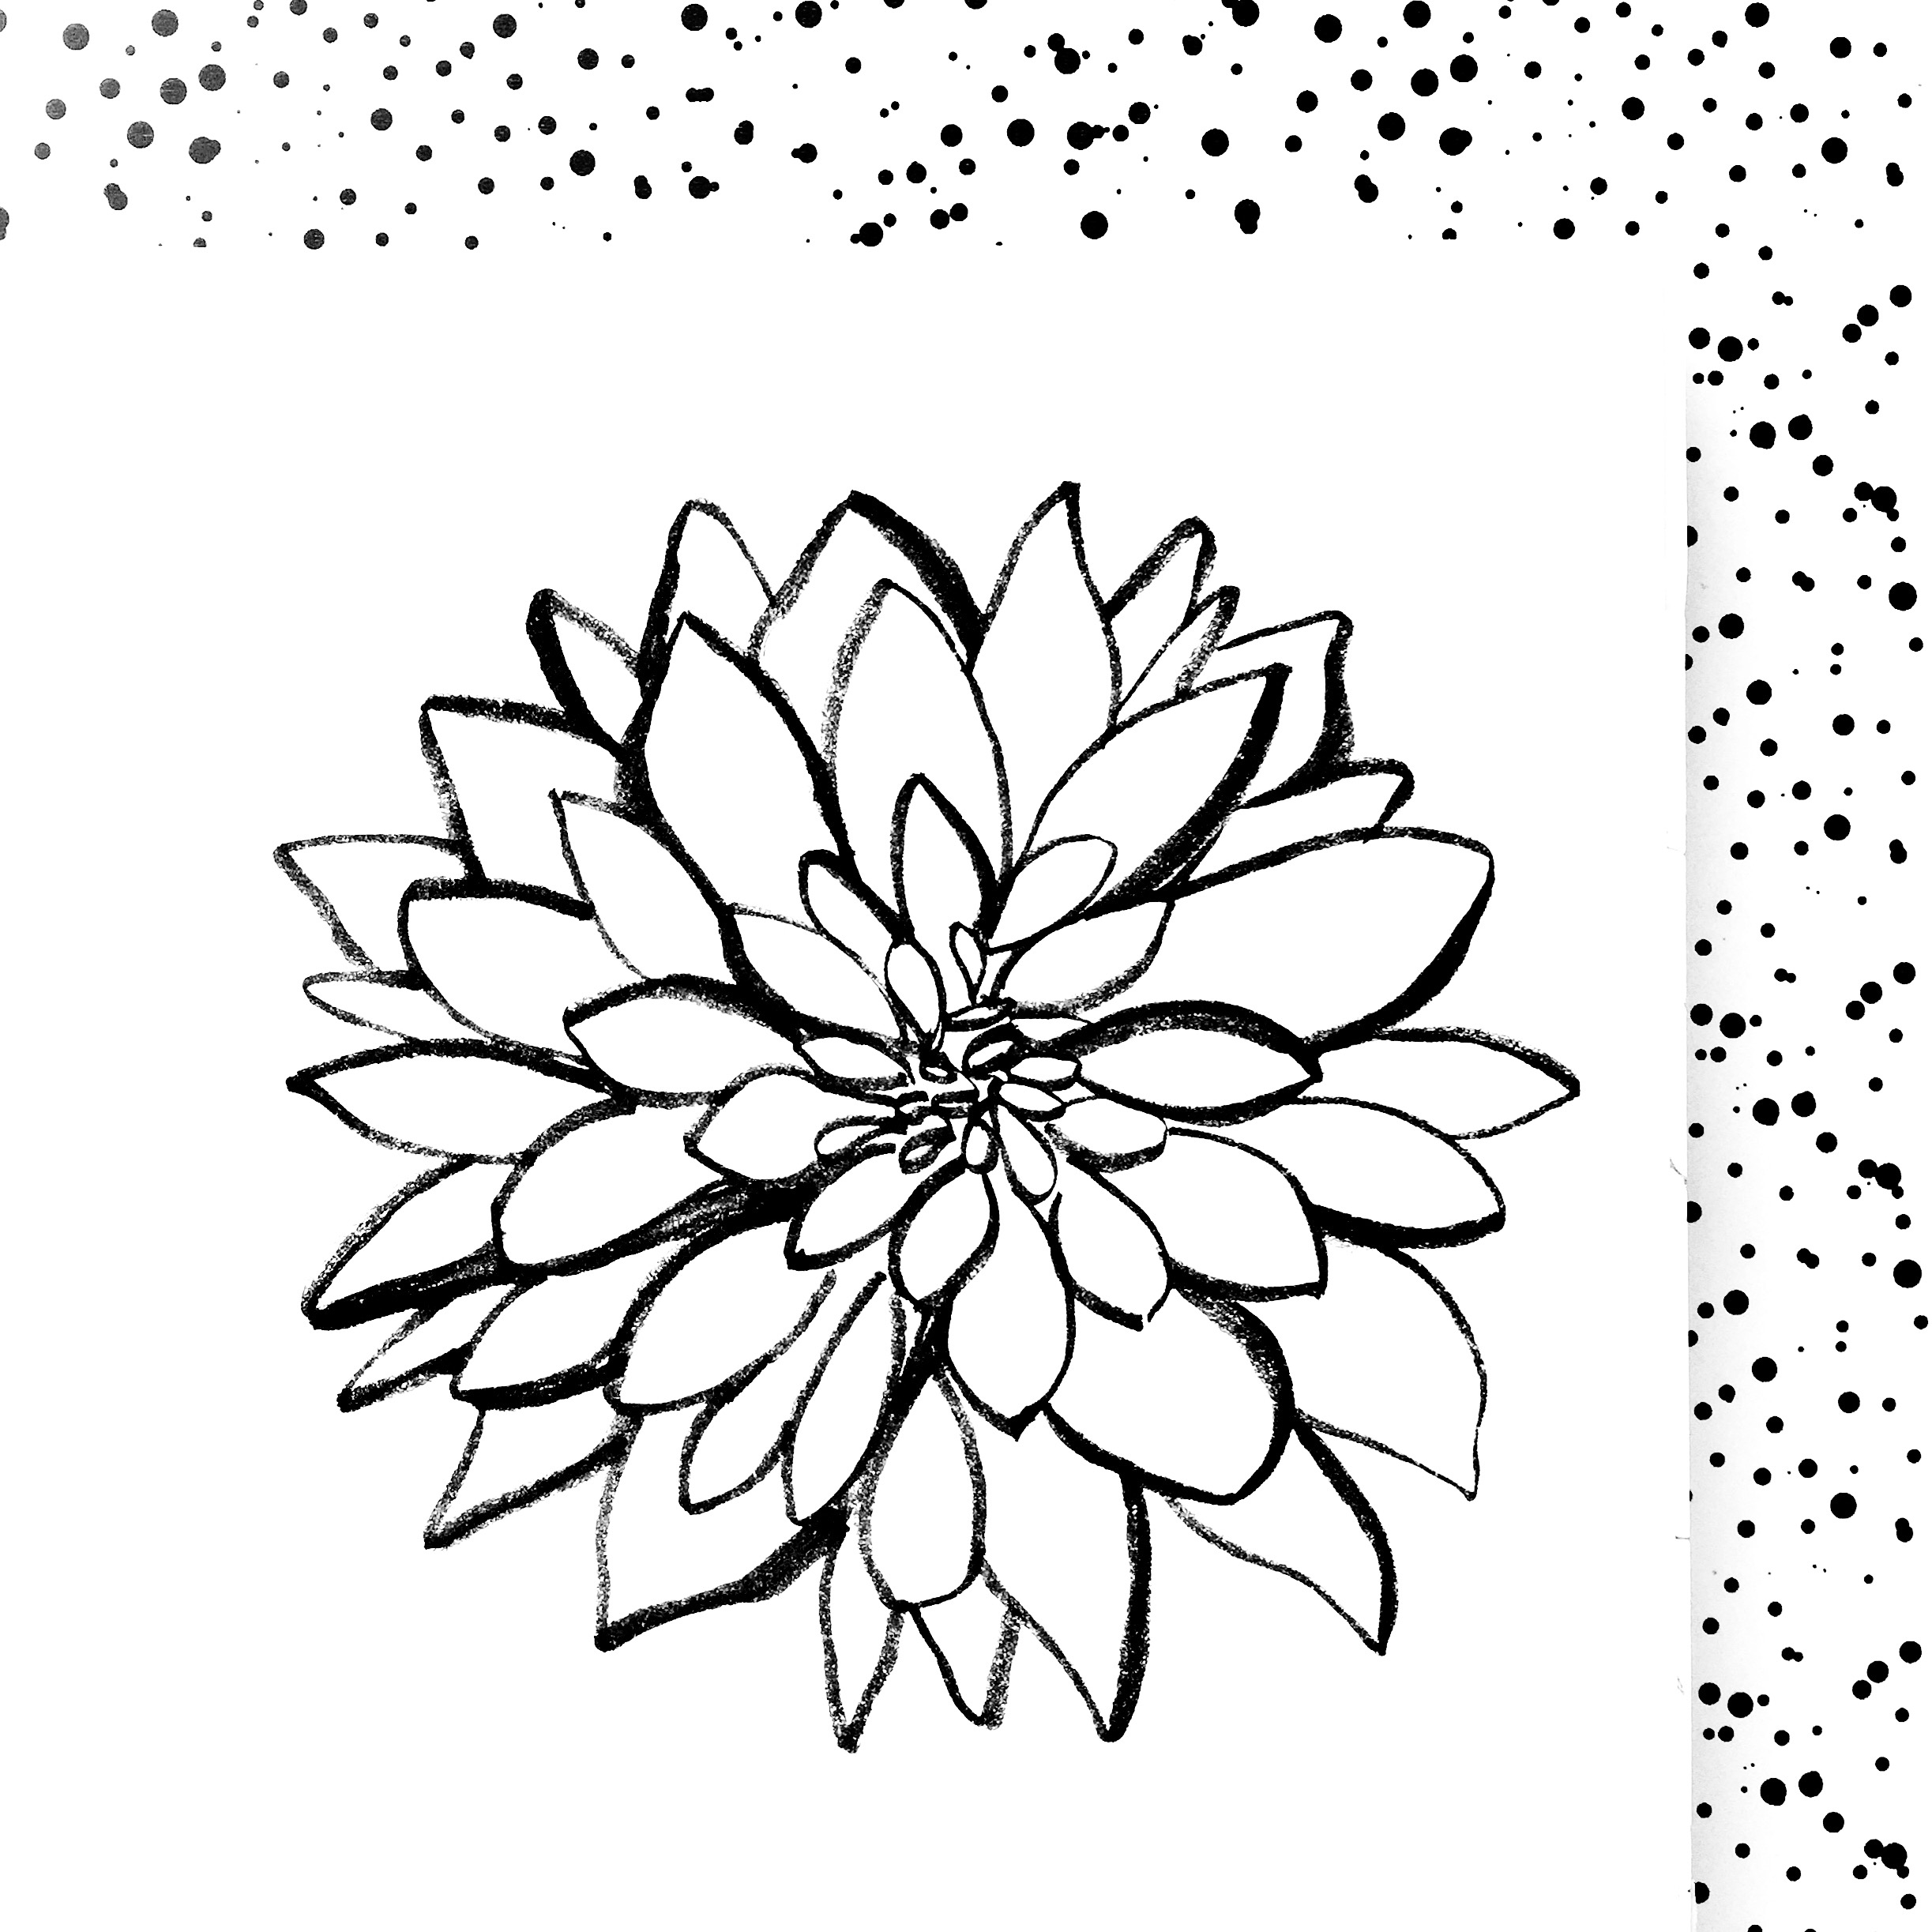 dahlia-ink-drawing-sqaure-daphnerosa